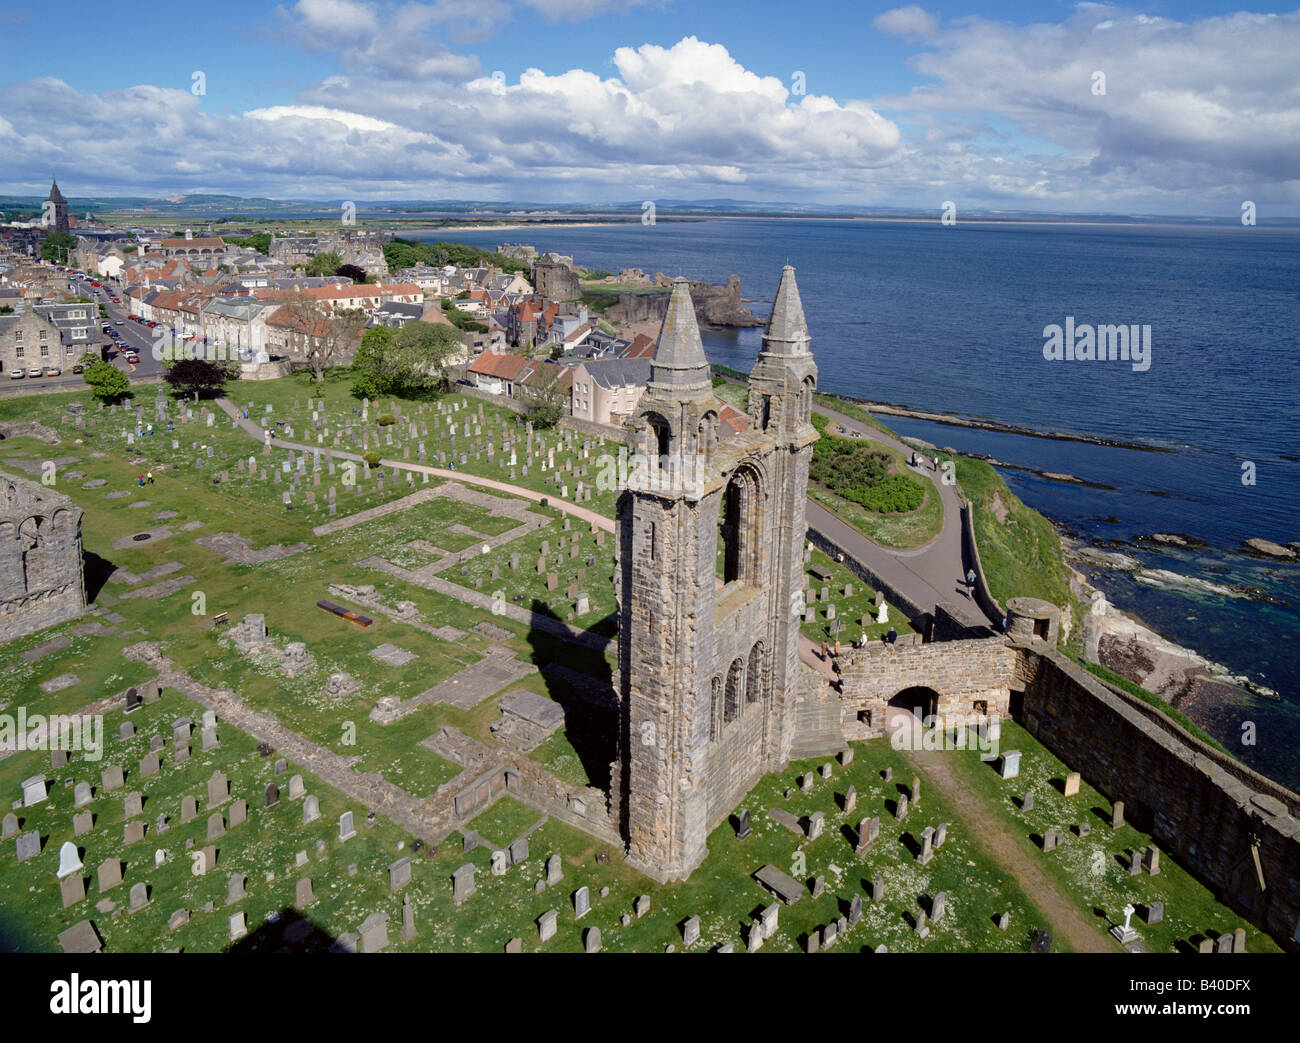 dh Cathedral ST ANDREWS FIFE Catherdral ruins cemetery town castle and North street Saint andrew scotland Stock Photo